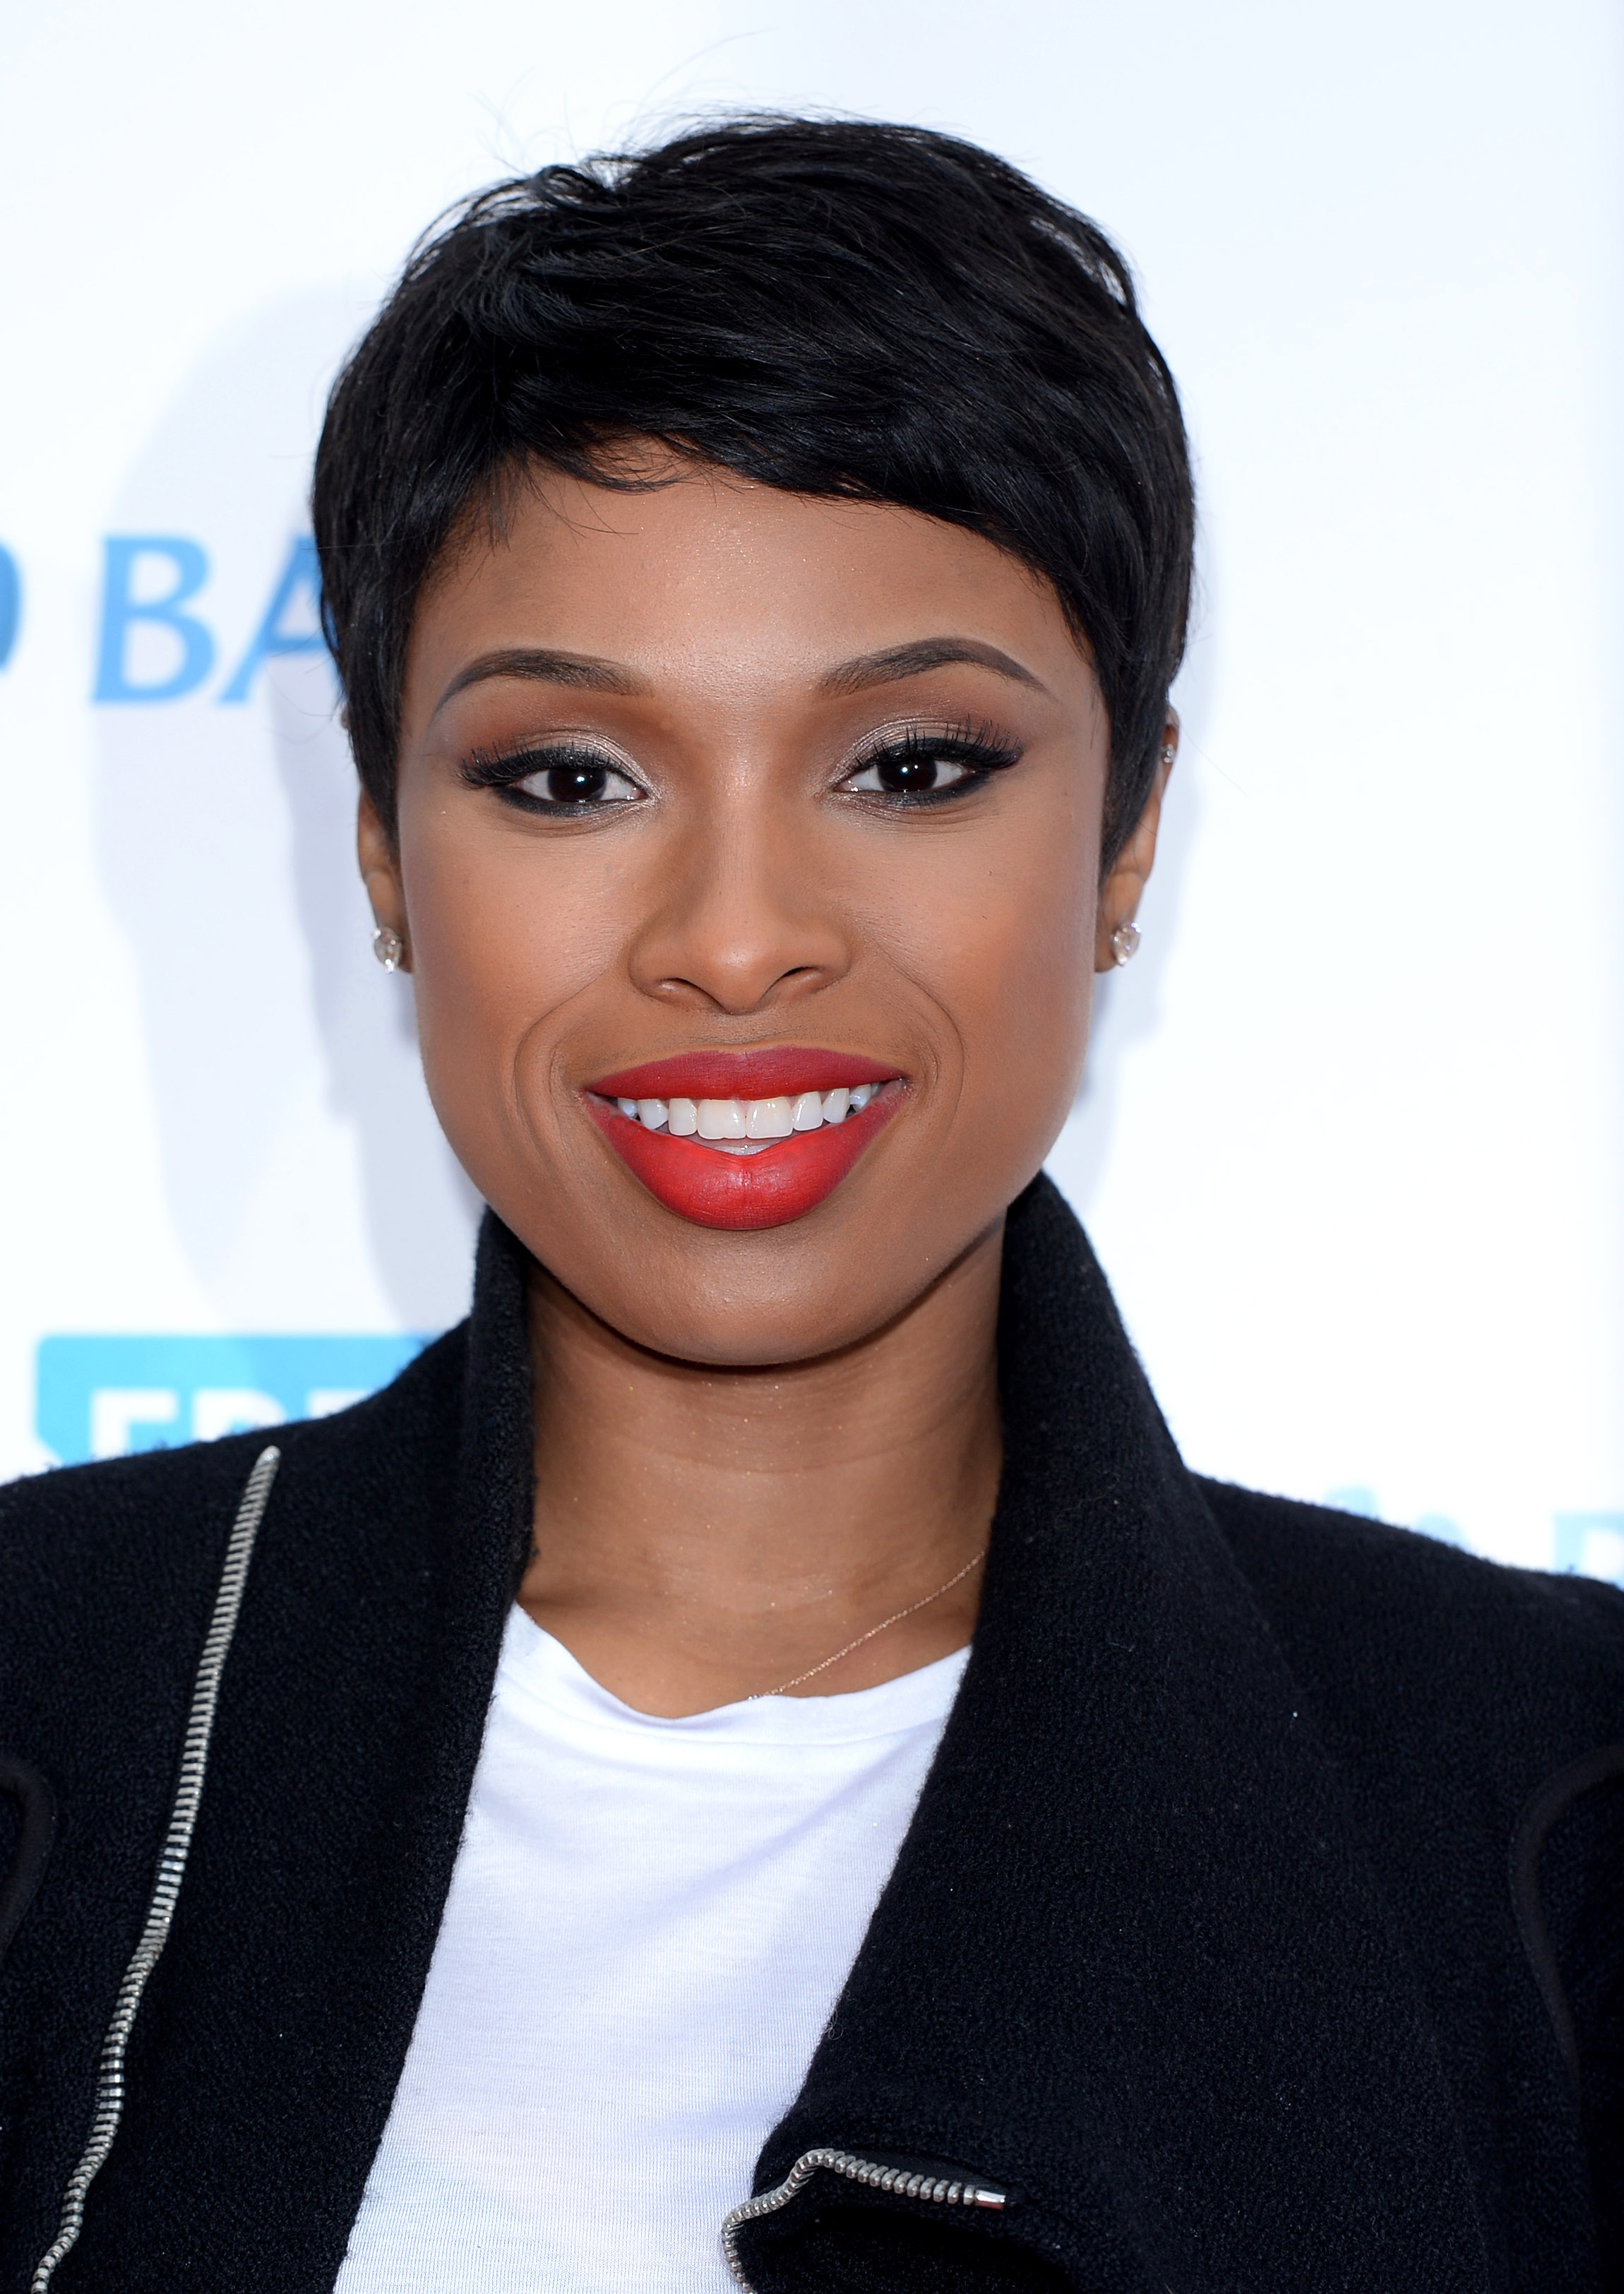 Pleasant 34 Pixie Hairstyles And Cuts Celebrities With Pixies Short Hairstyles For Black Women Fulllsitofus